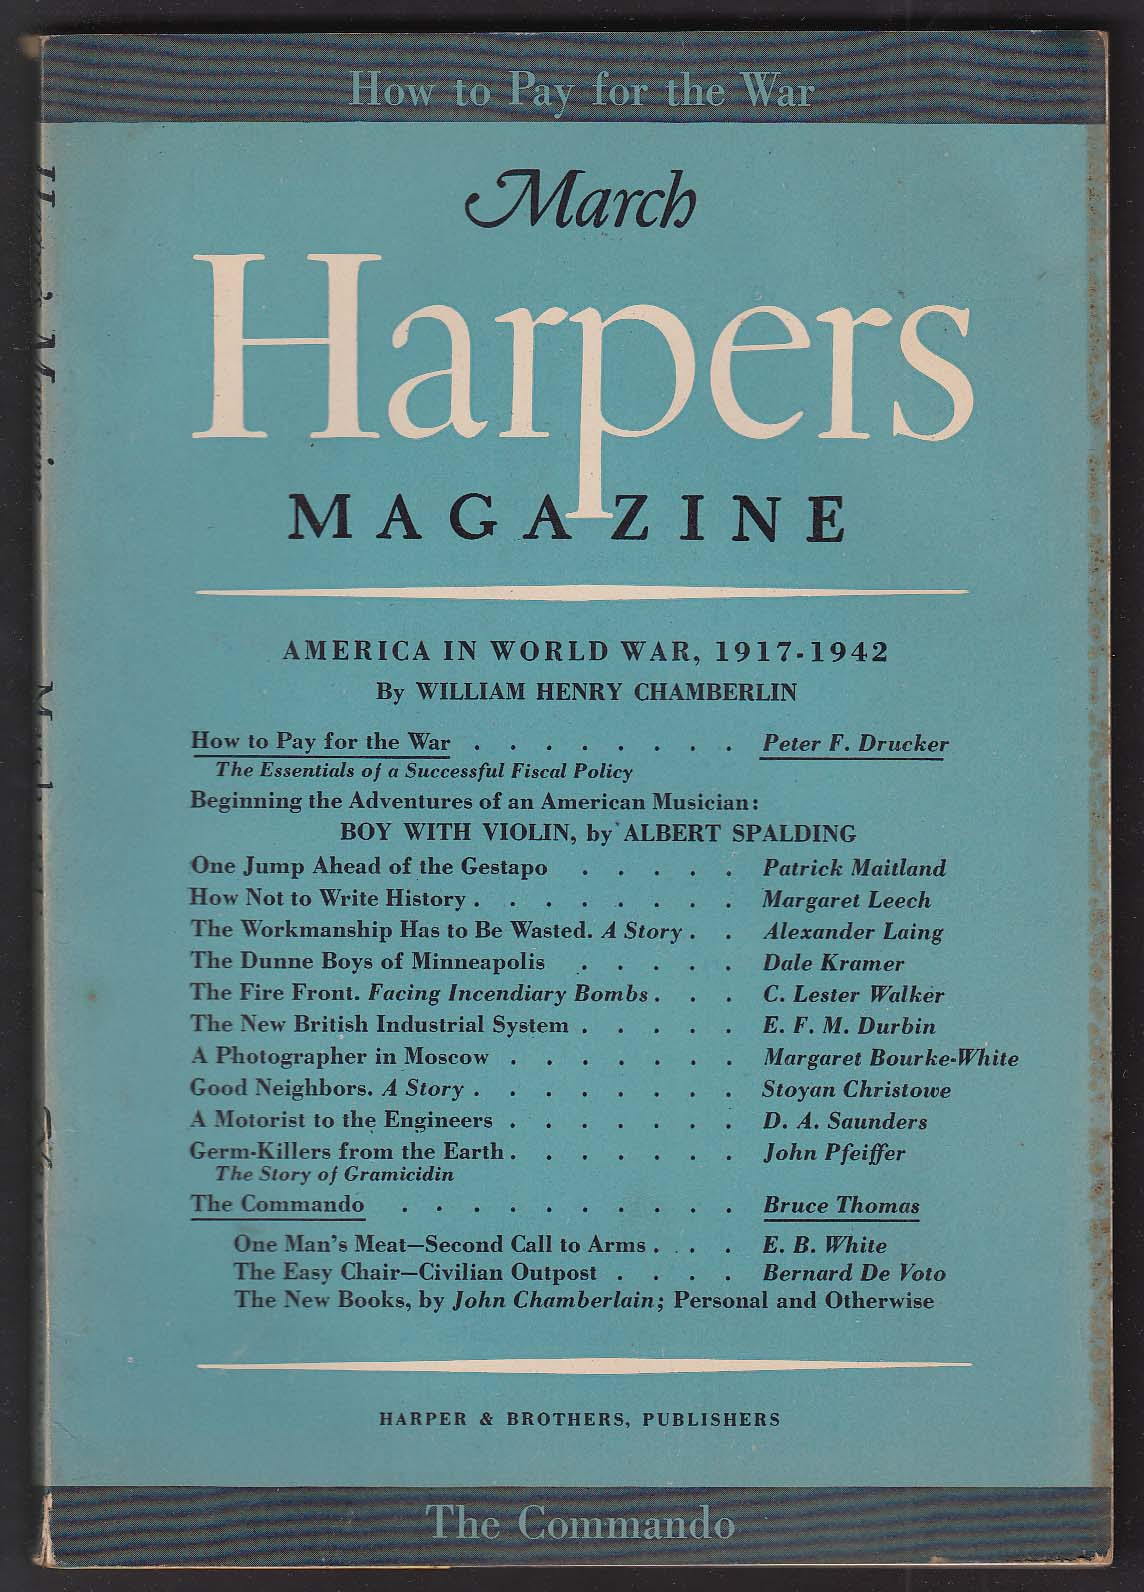 HARPER'S William Henry Chamberlin Albert Spalding E B White + 3 1942